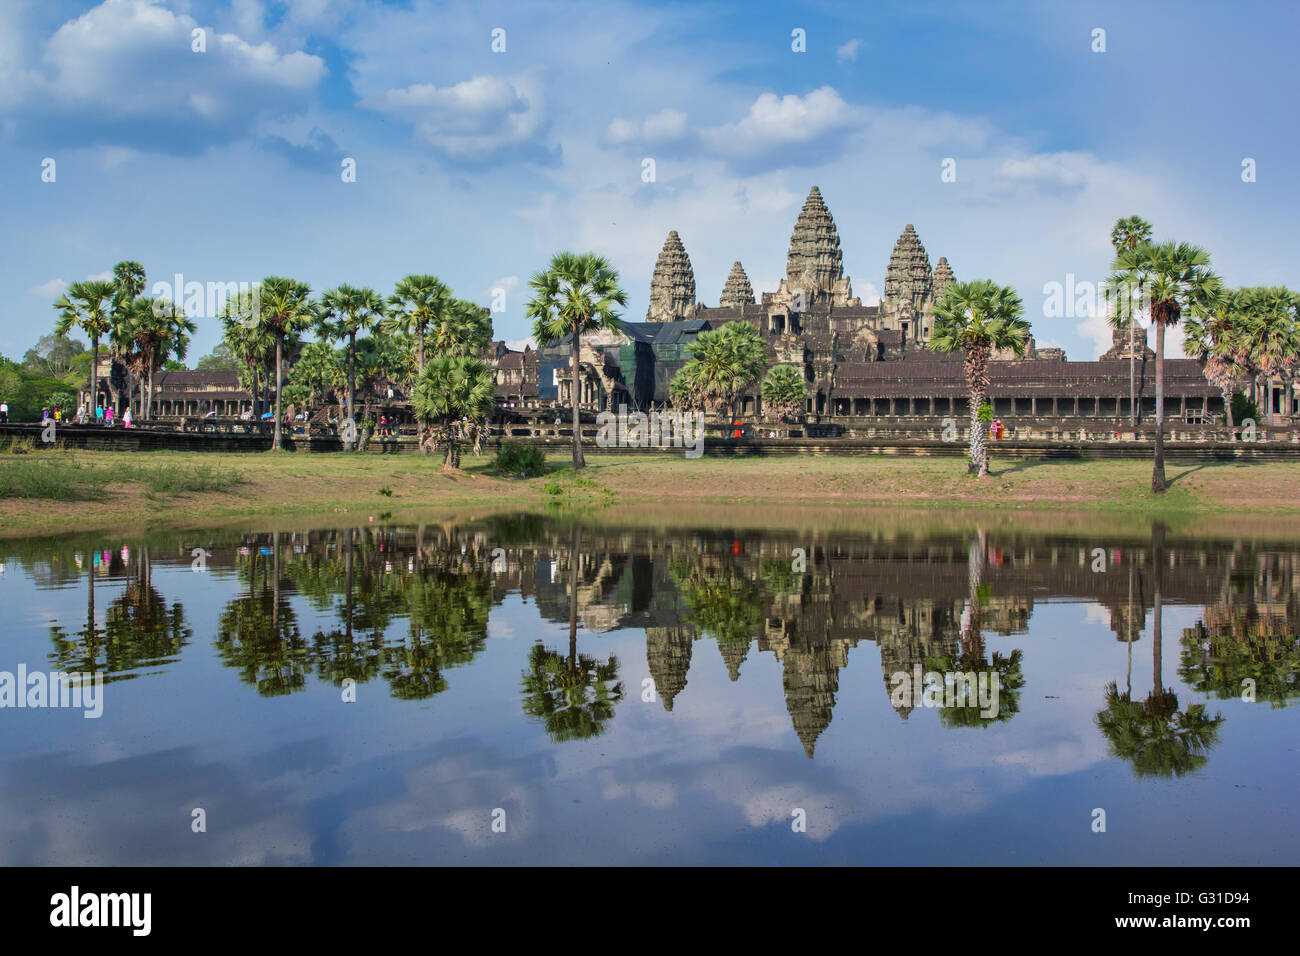 Angkor Wat day time reflection on the lake - Stock Image